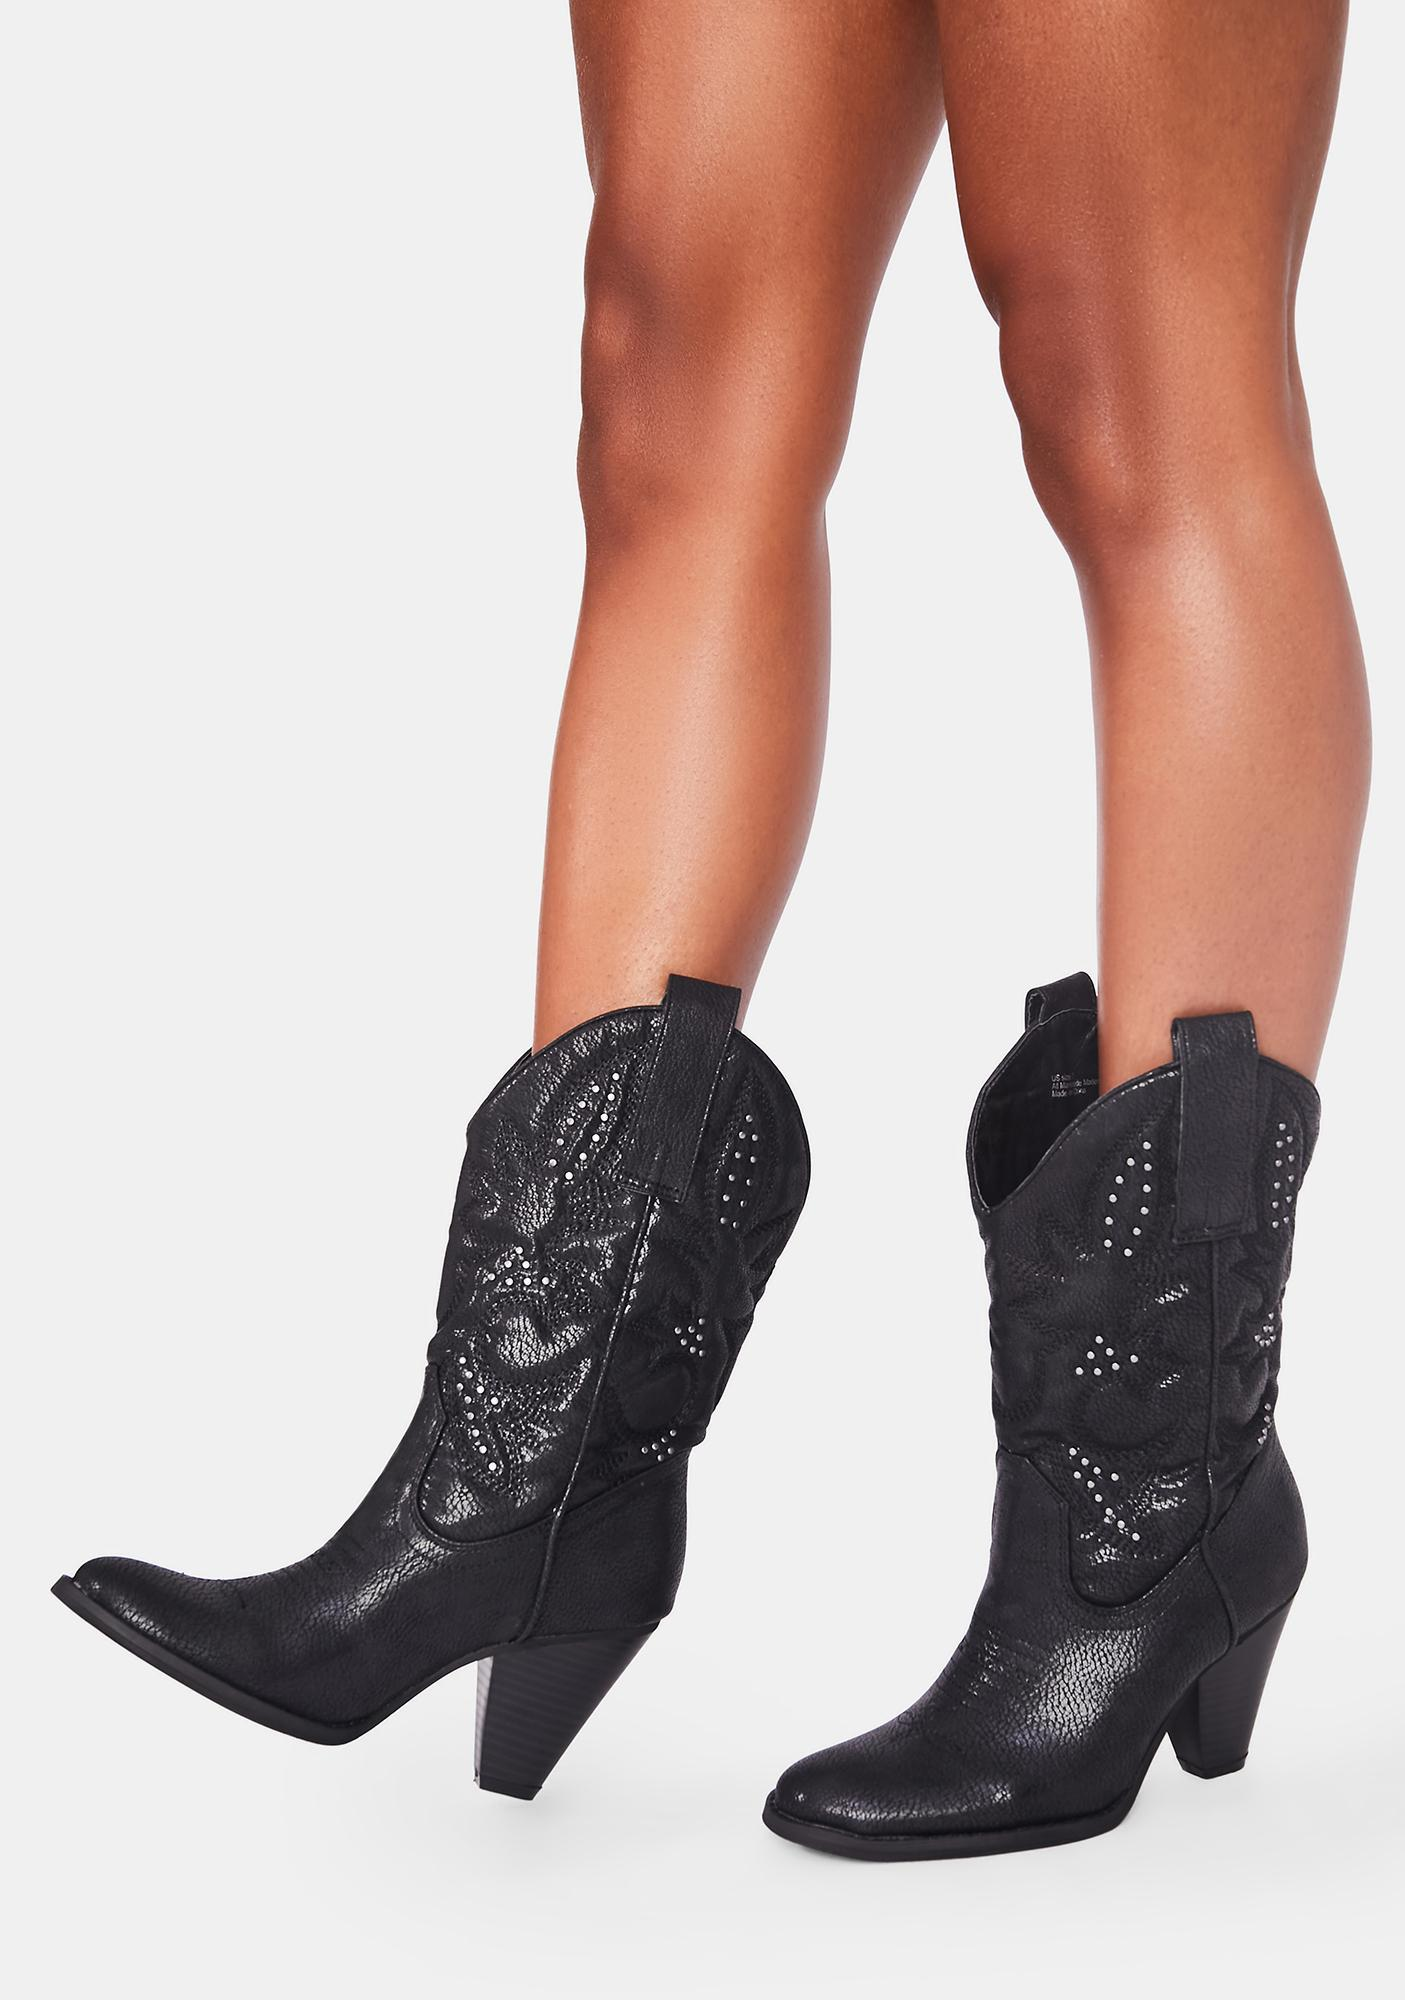 Volatile Shoes Nightbloom Cowboy Boots